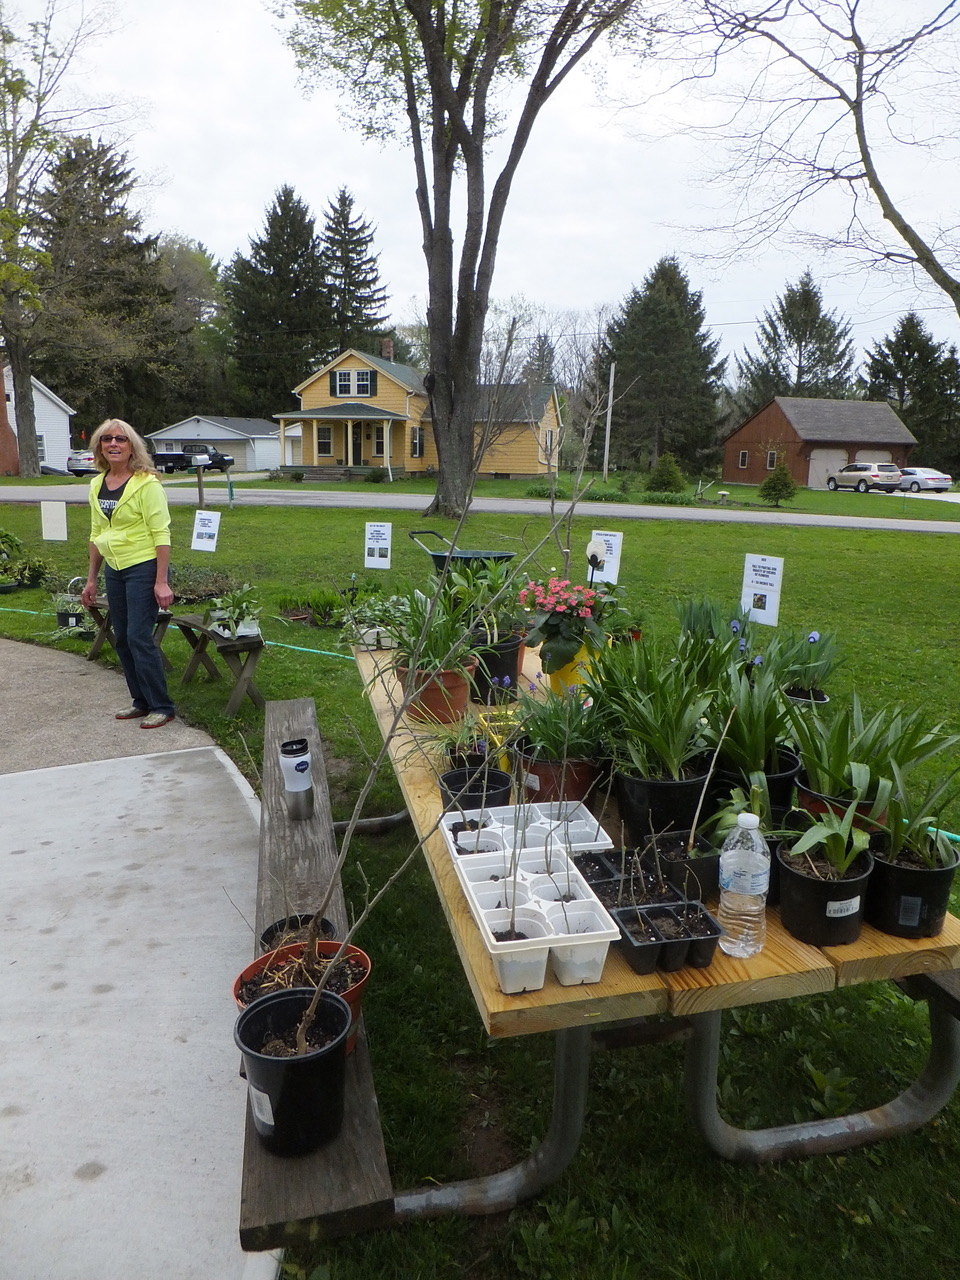 Herbs, Perennials, Hanging Baskets, Heirloom Vegetable And Tomato Plants,  Mothersu0027 Day Gifts And Garden Related Books And Items. Free Admission.